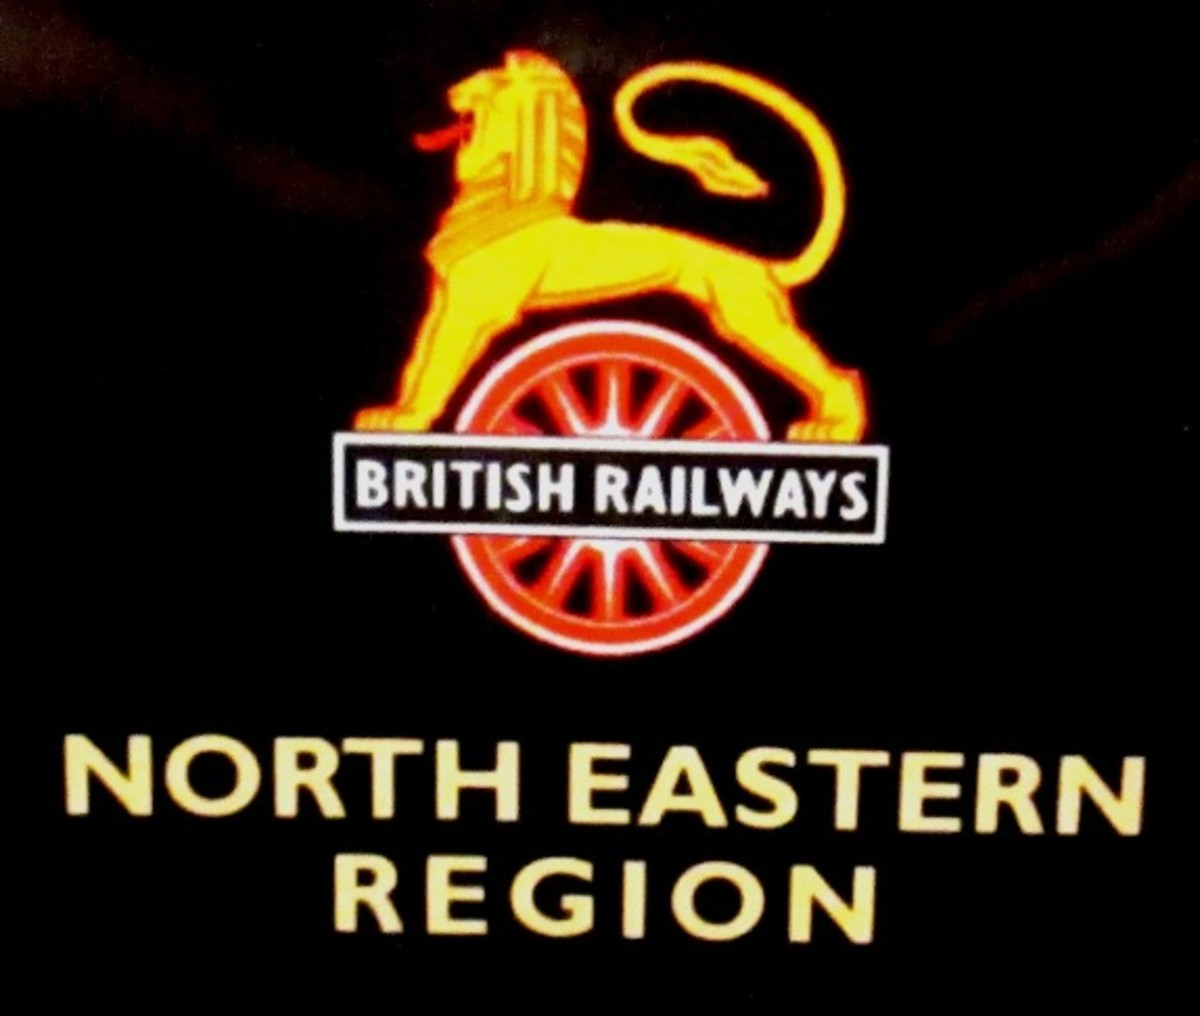 British Railways' North Eastern Region took over running at a time when mining was in decline and a 'sword of Damocles' hung over the branch. Stations east of Guisborough began to close in the mid-1950s